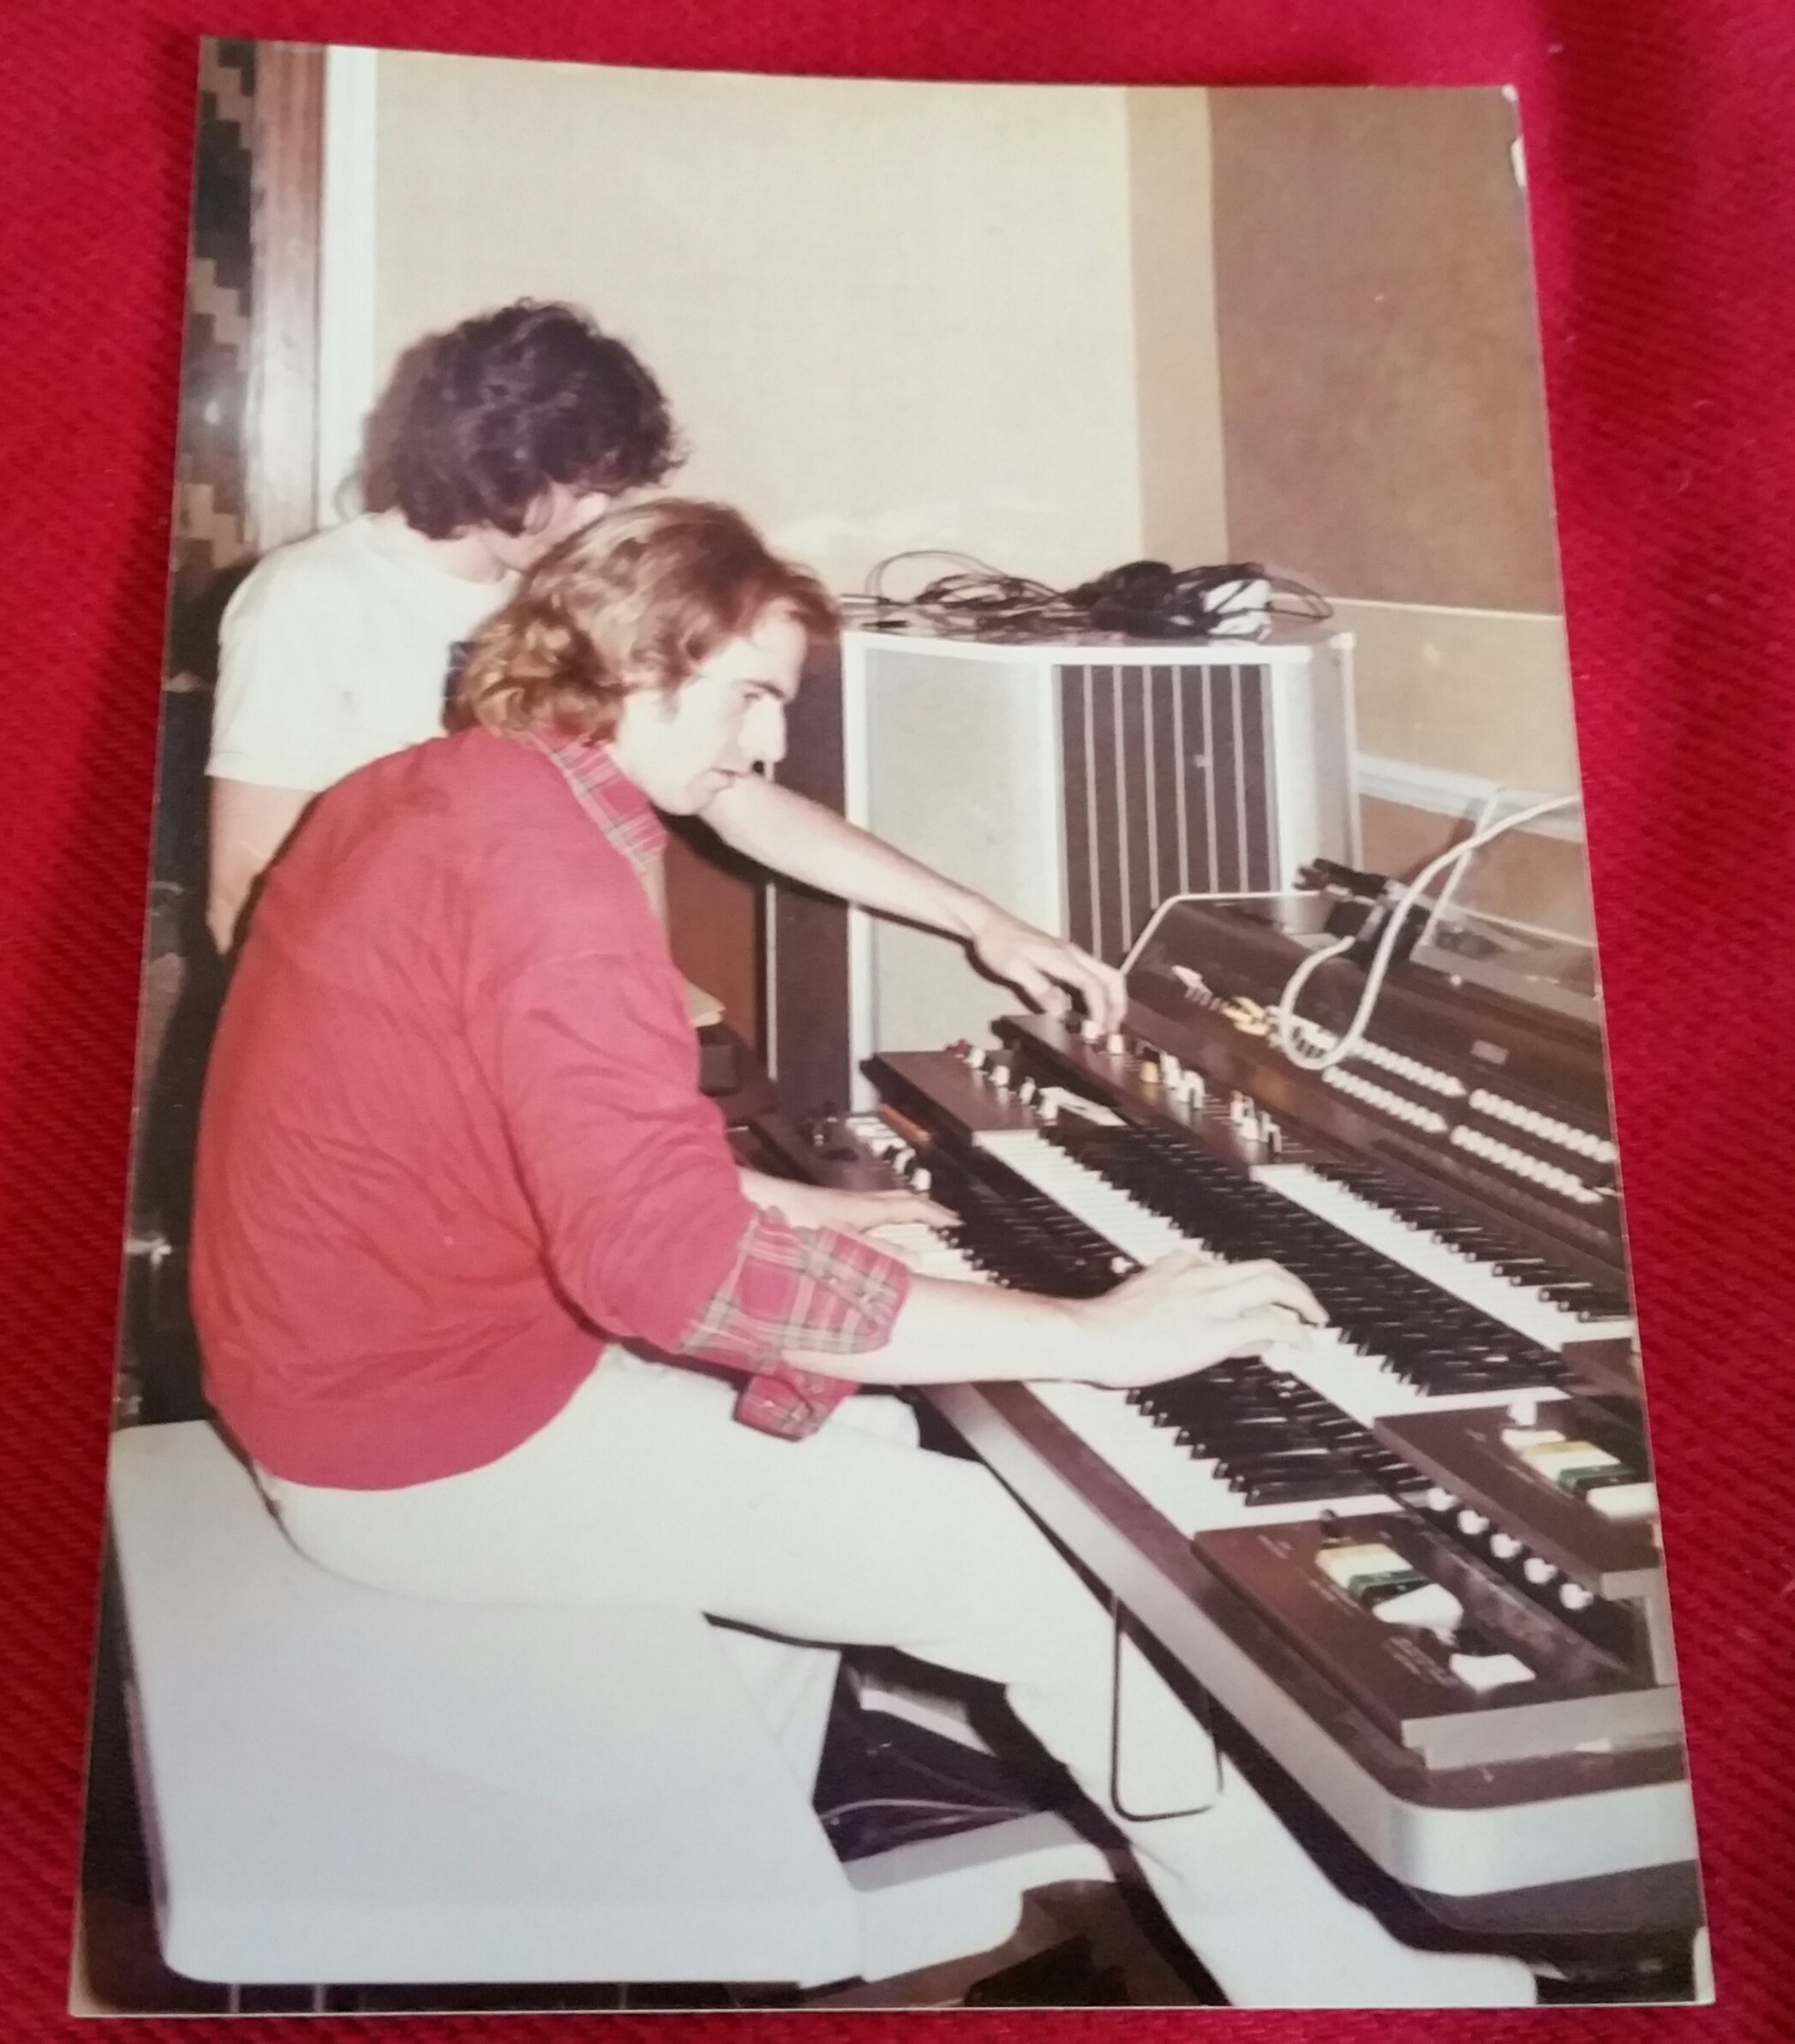 A Bootleg Review and Yessongs live? 244 – Yes Music Podcast